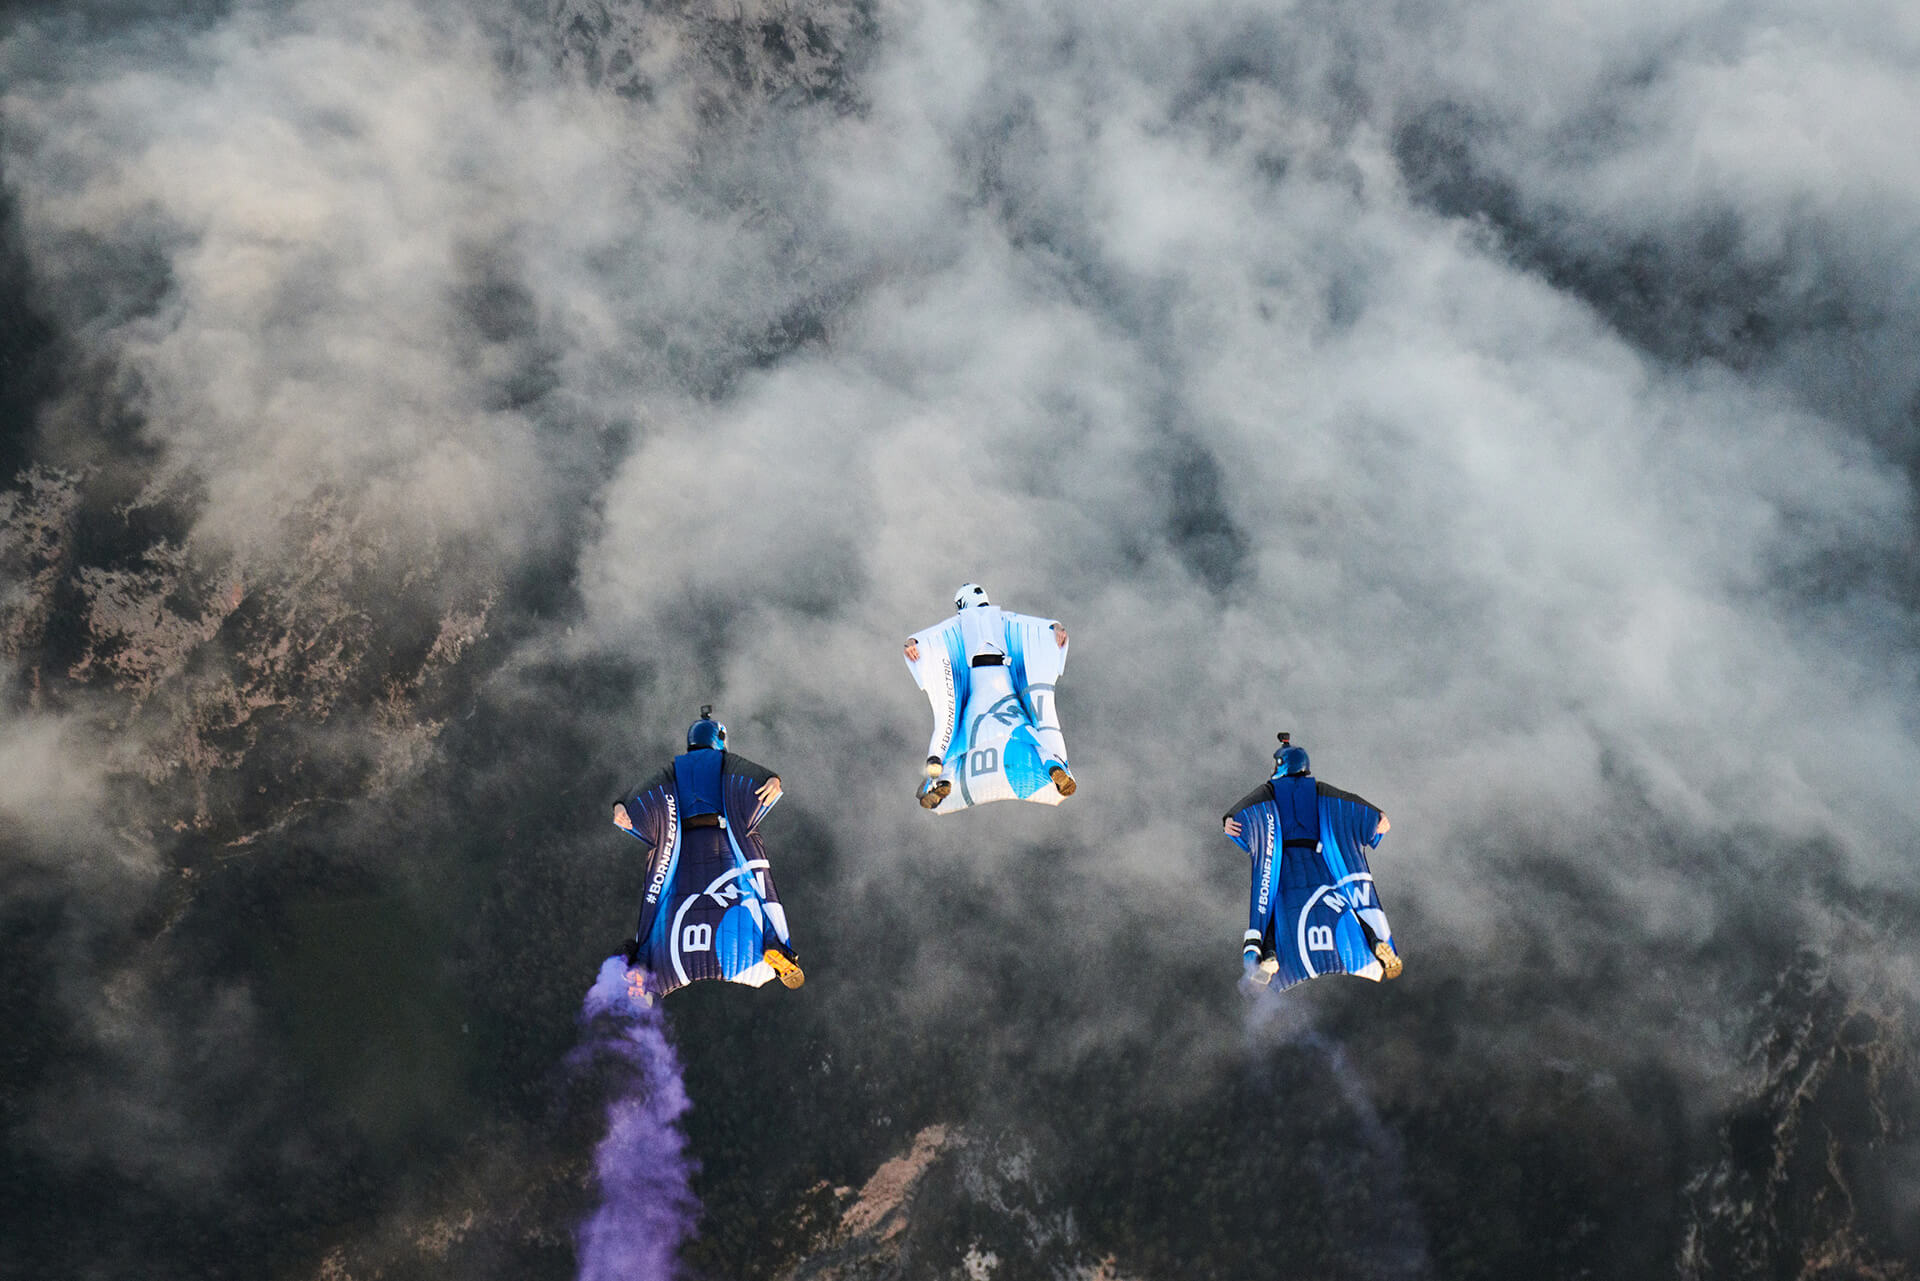 Out of the three pilots, only Salzmann (centre) was wearing the electrified wingsuit | Electrified Wingsuit | BMWi, Designworks, Peter Salzmann | STIRworld